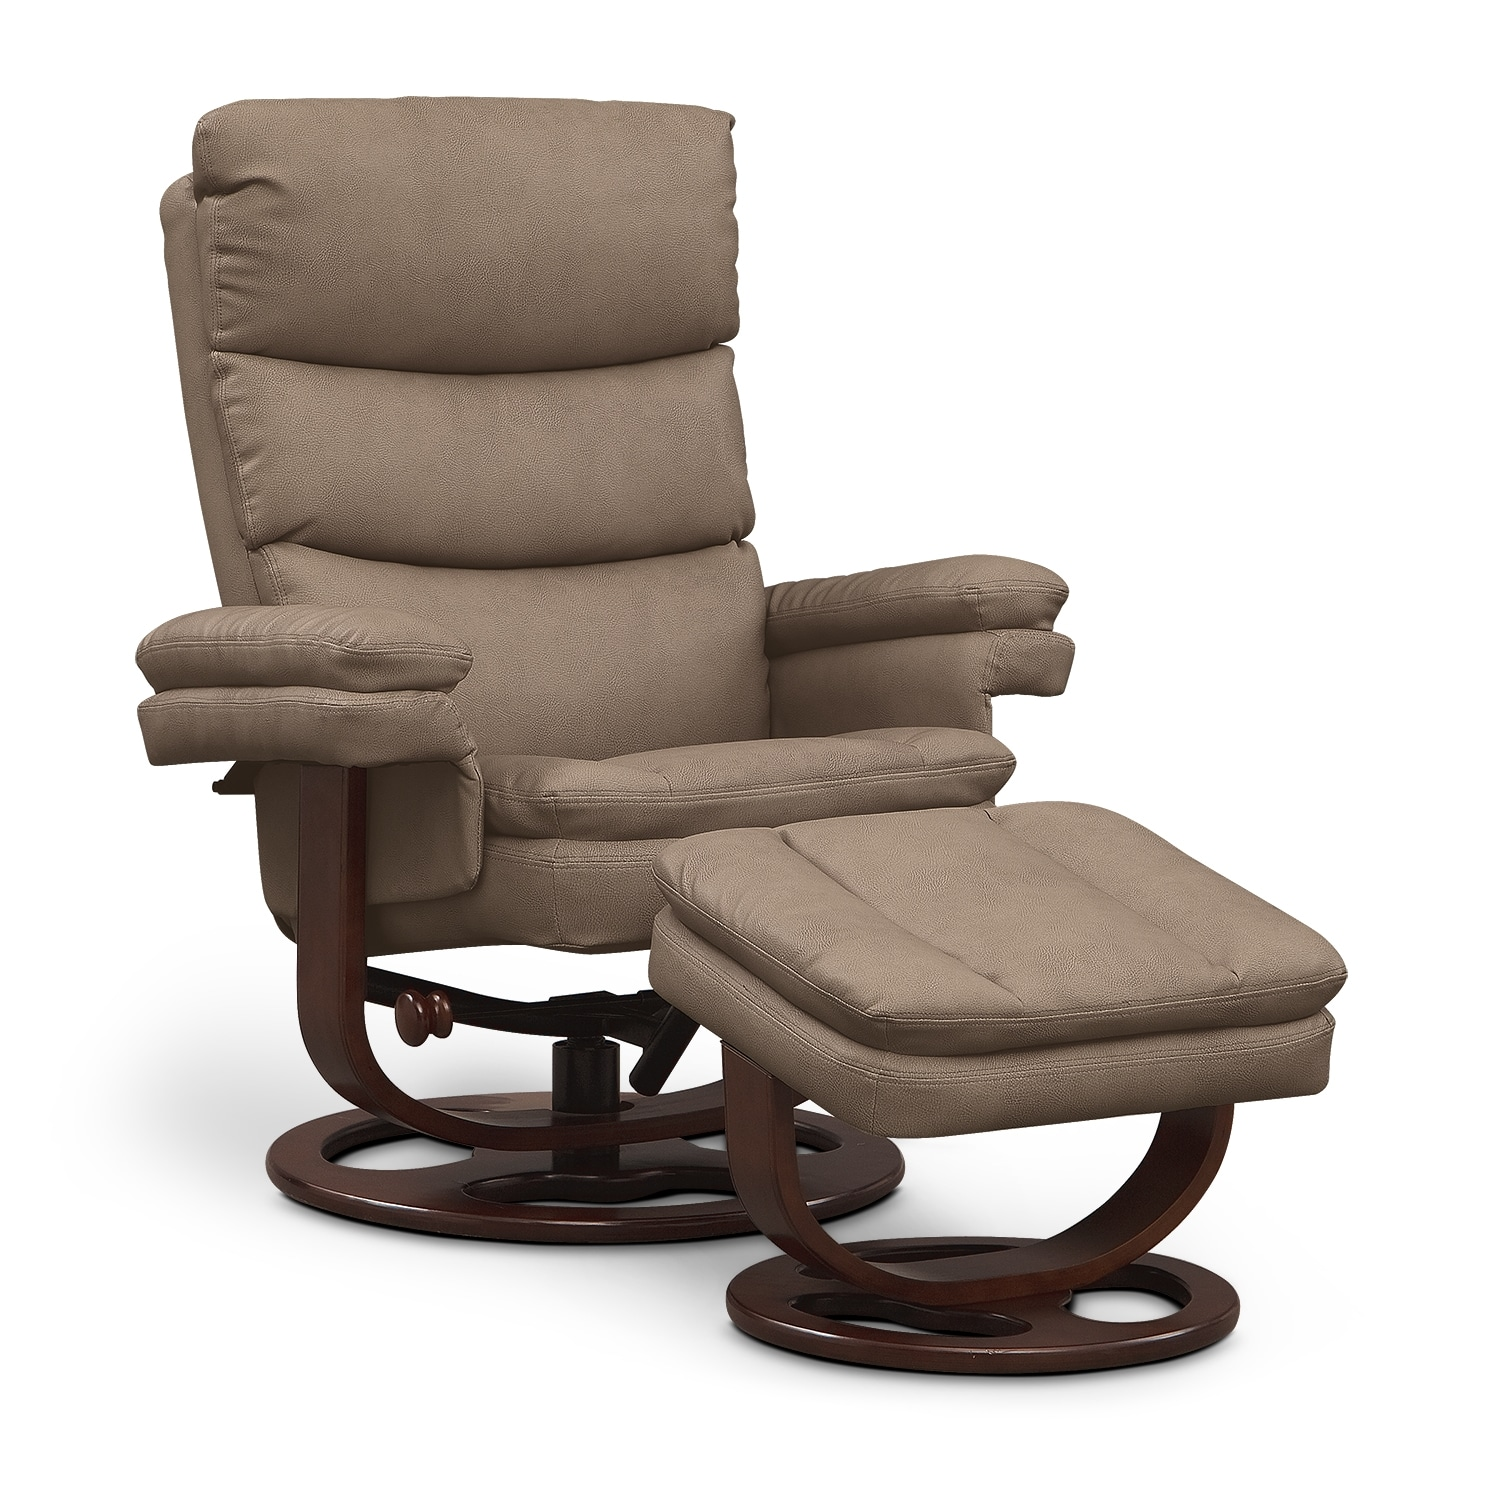 Image Result For Reclining Leather Swivel Chair With Ottoman